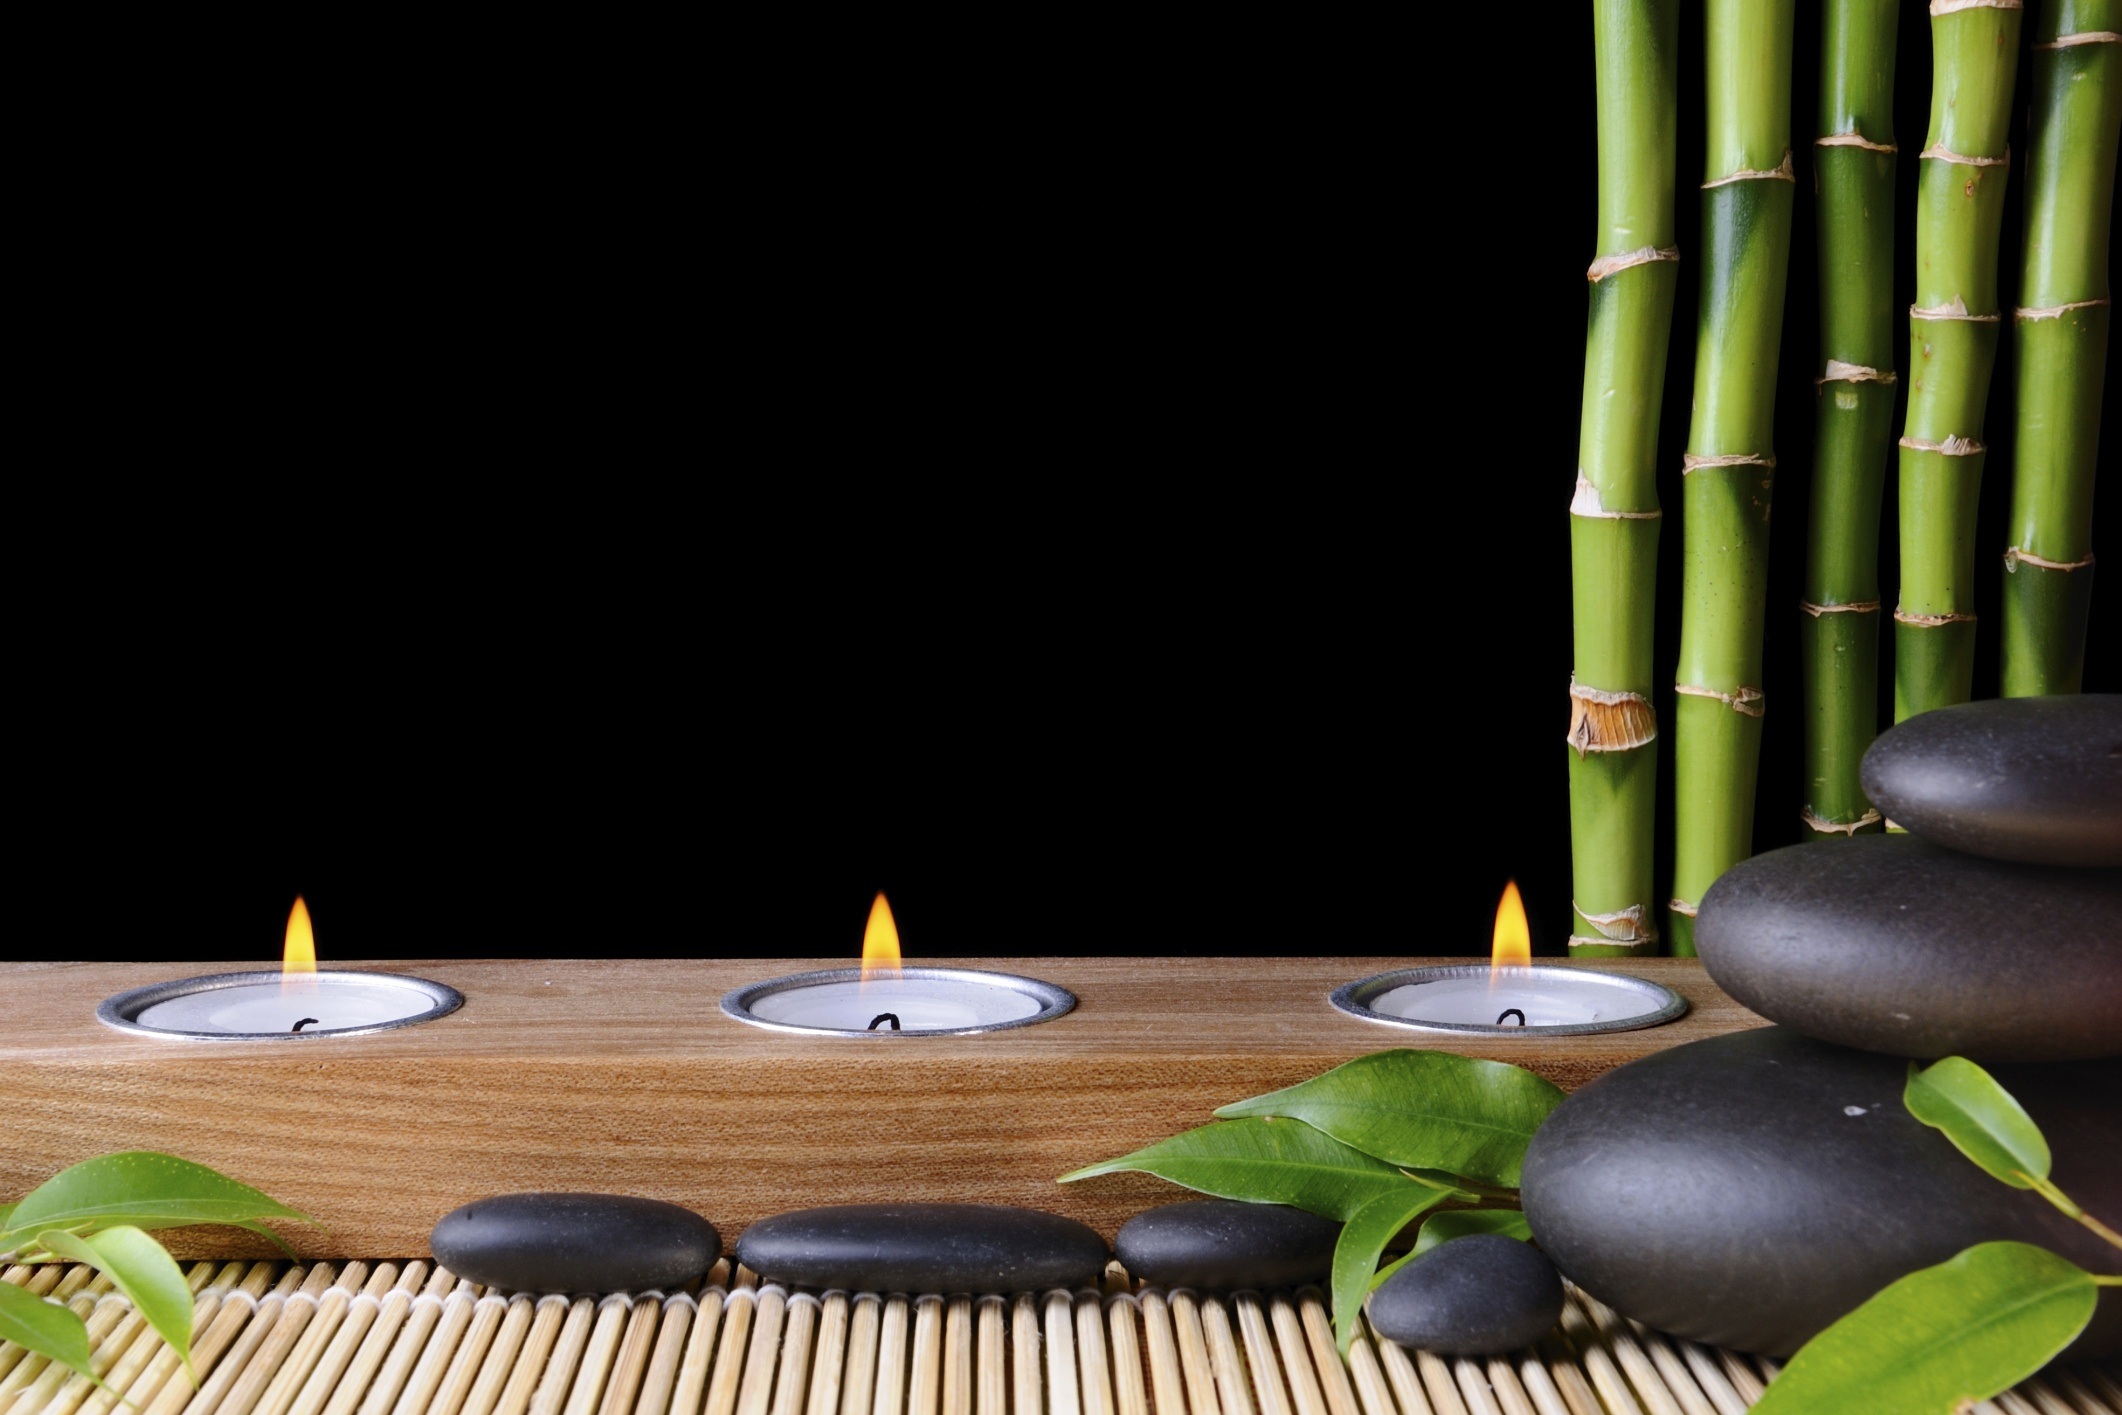 just_relax_feng_shui_comfort_candles_stones_hd-wallpaper-1542033